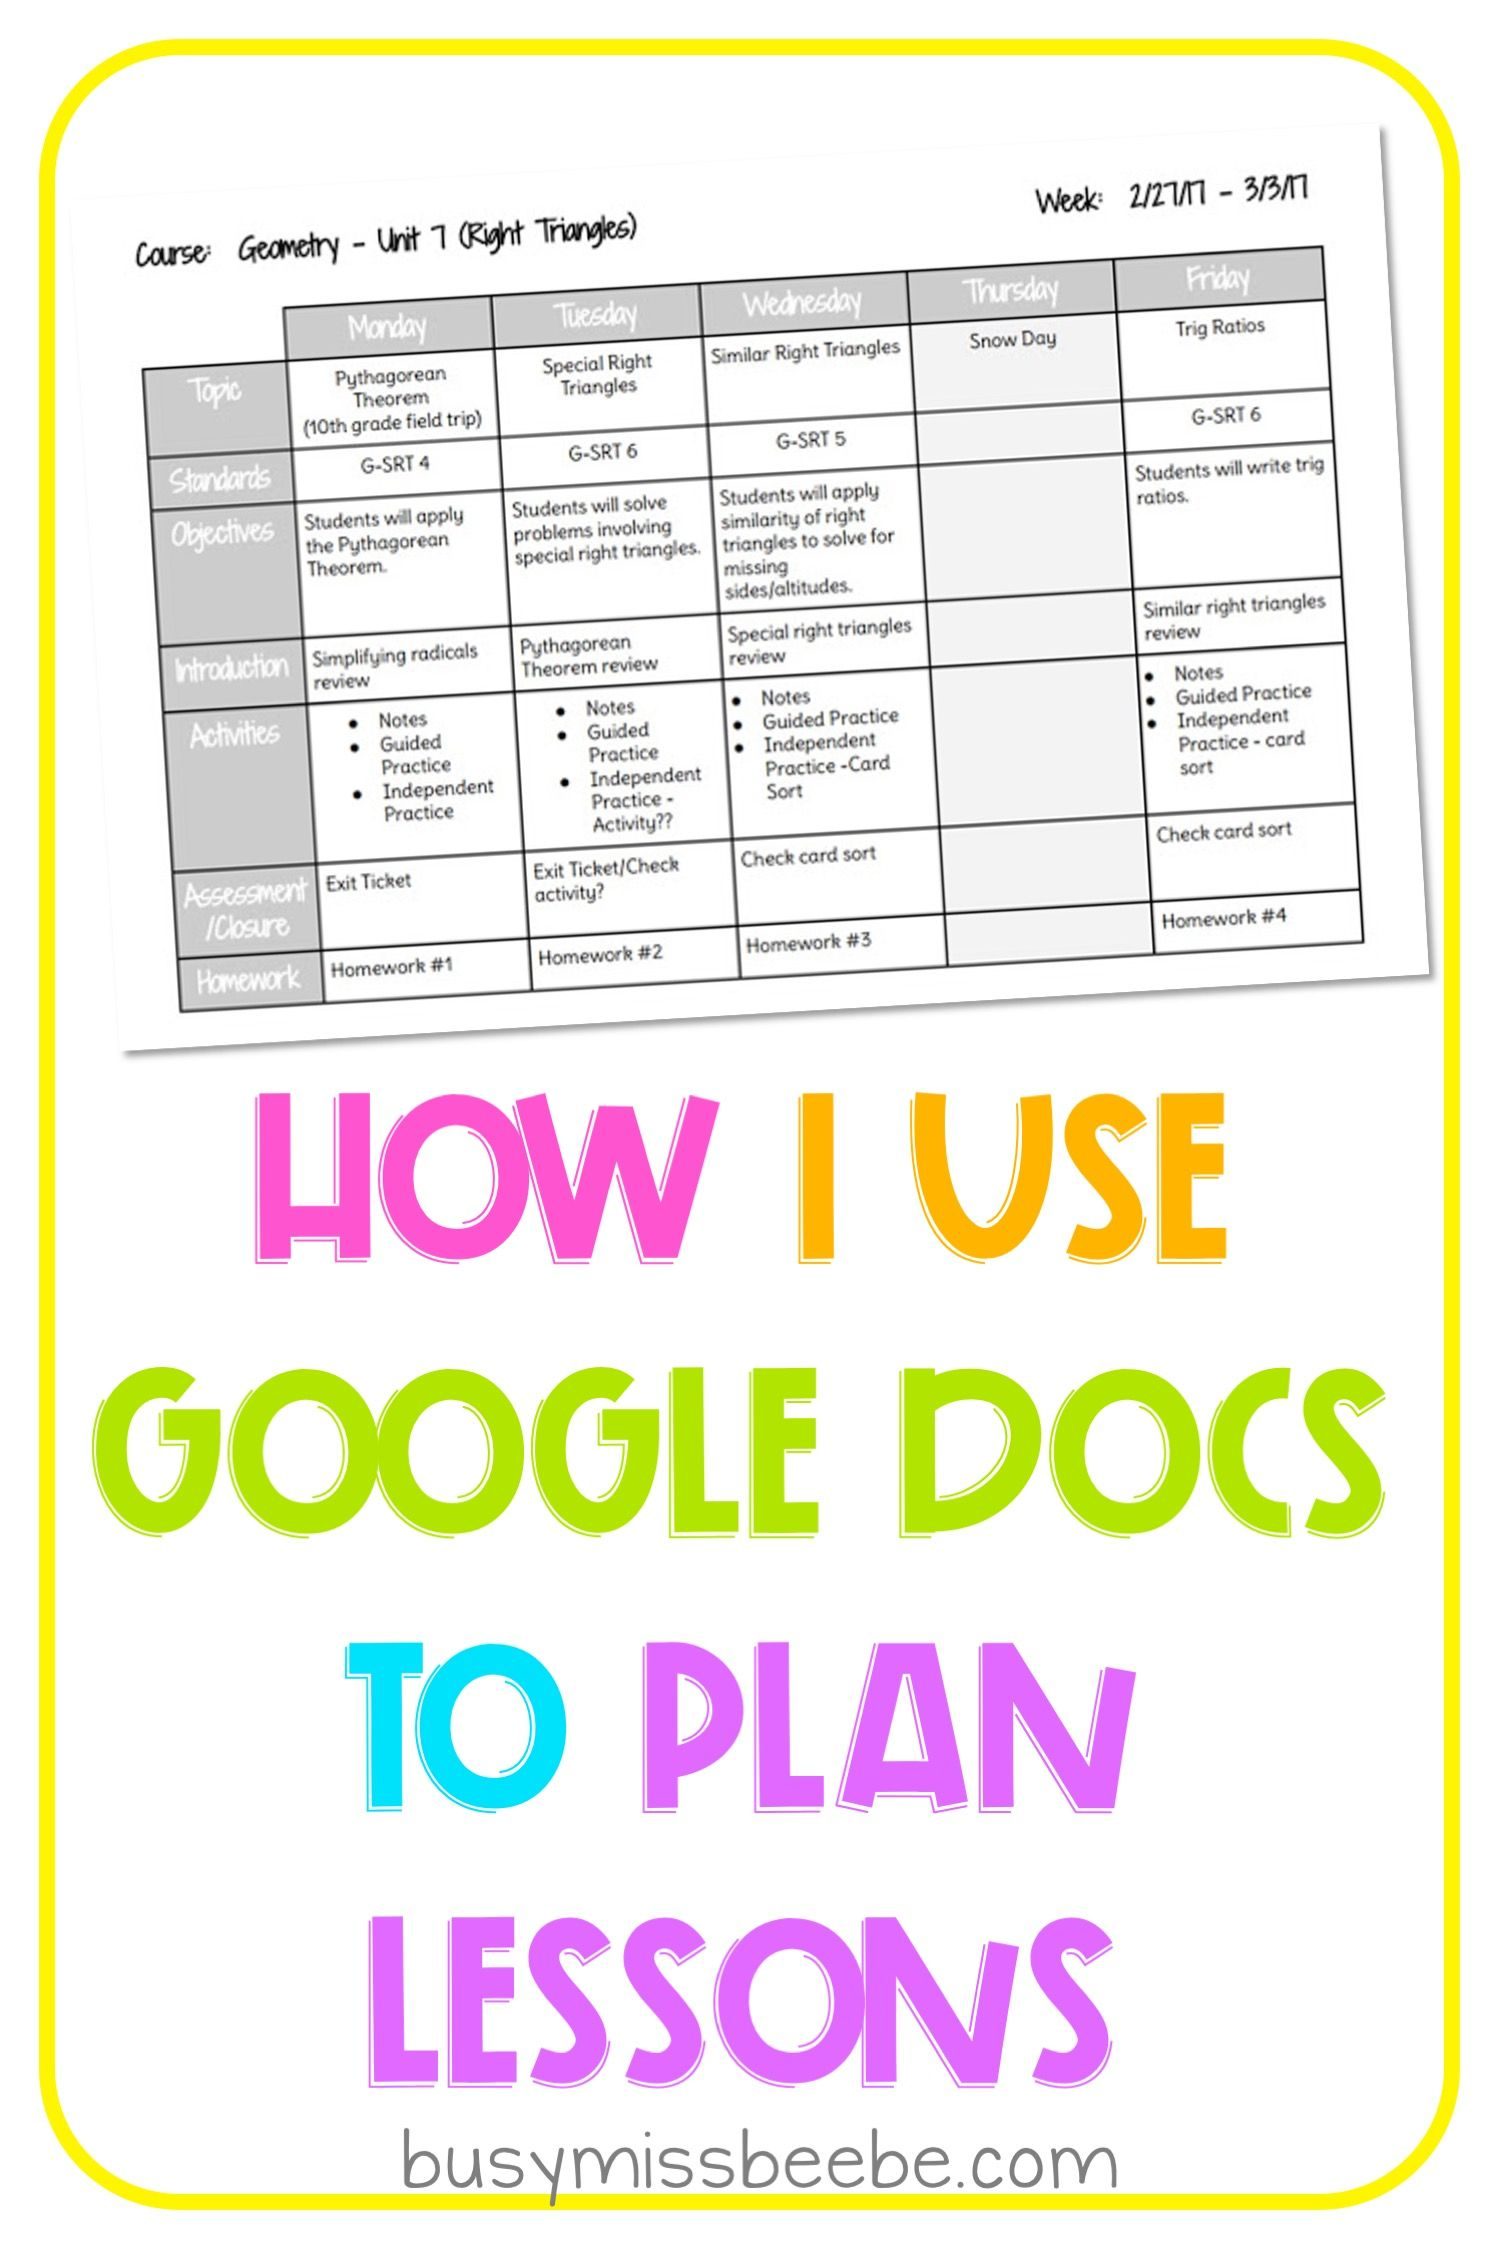 Grab Your Free Copy Of A Simple Weekly Google Docs Lesson Plans Templat Lesson Plan Template Free Kindergarten Lesson Plans Template Middle School Lesson Plans Weekly planning template for teachers